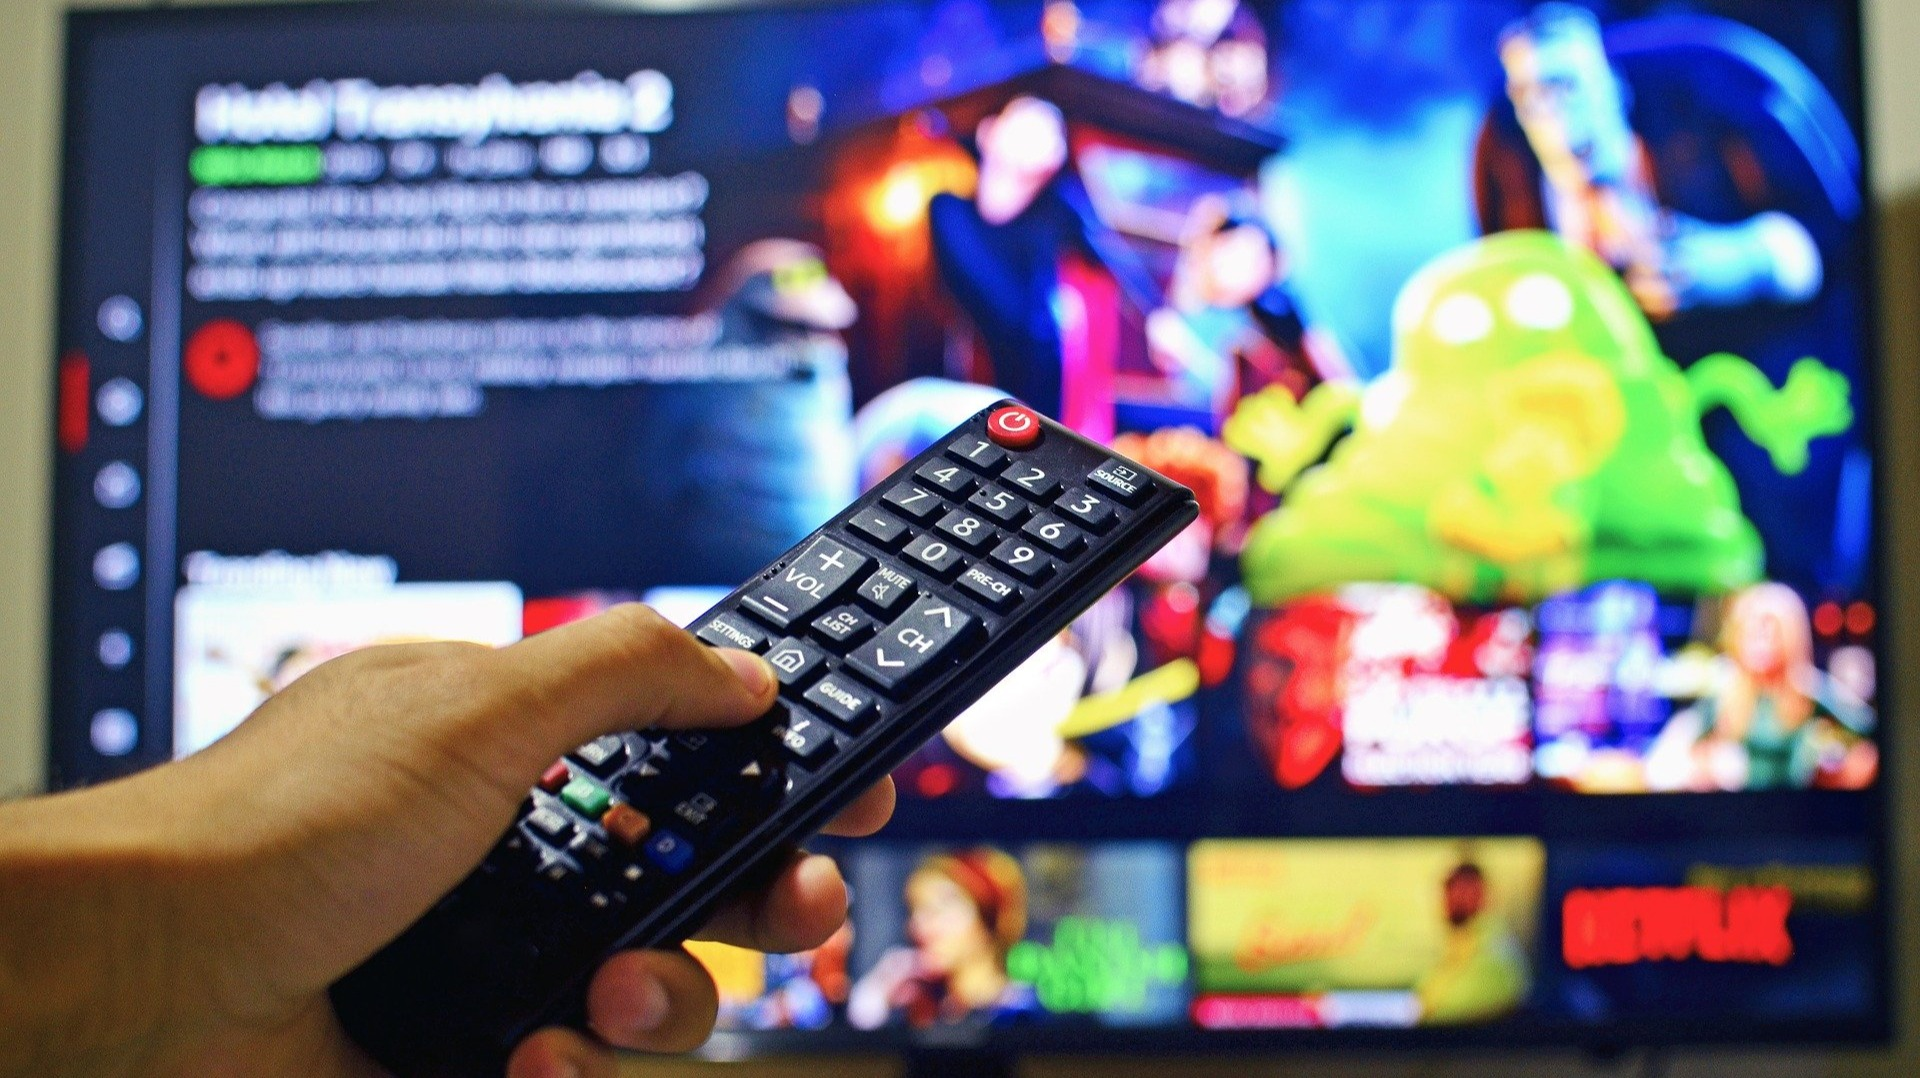 Overcoming Device Fragmentation to Deliver OTT Content Applications